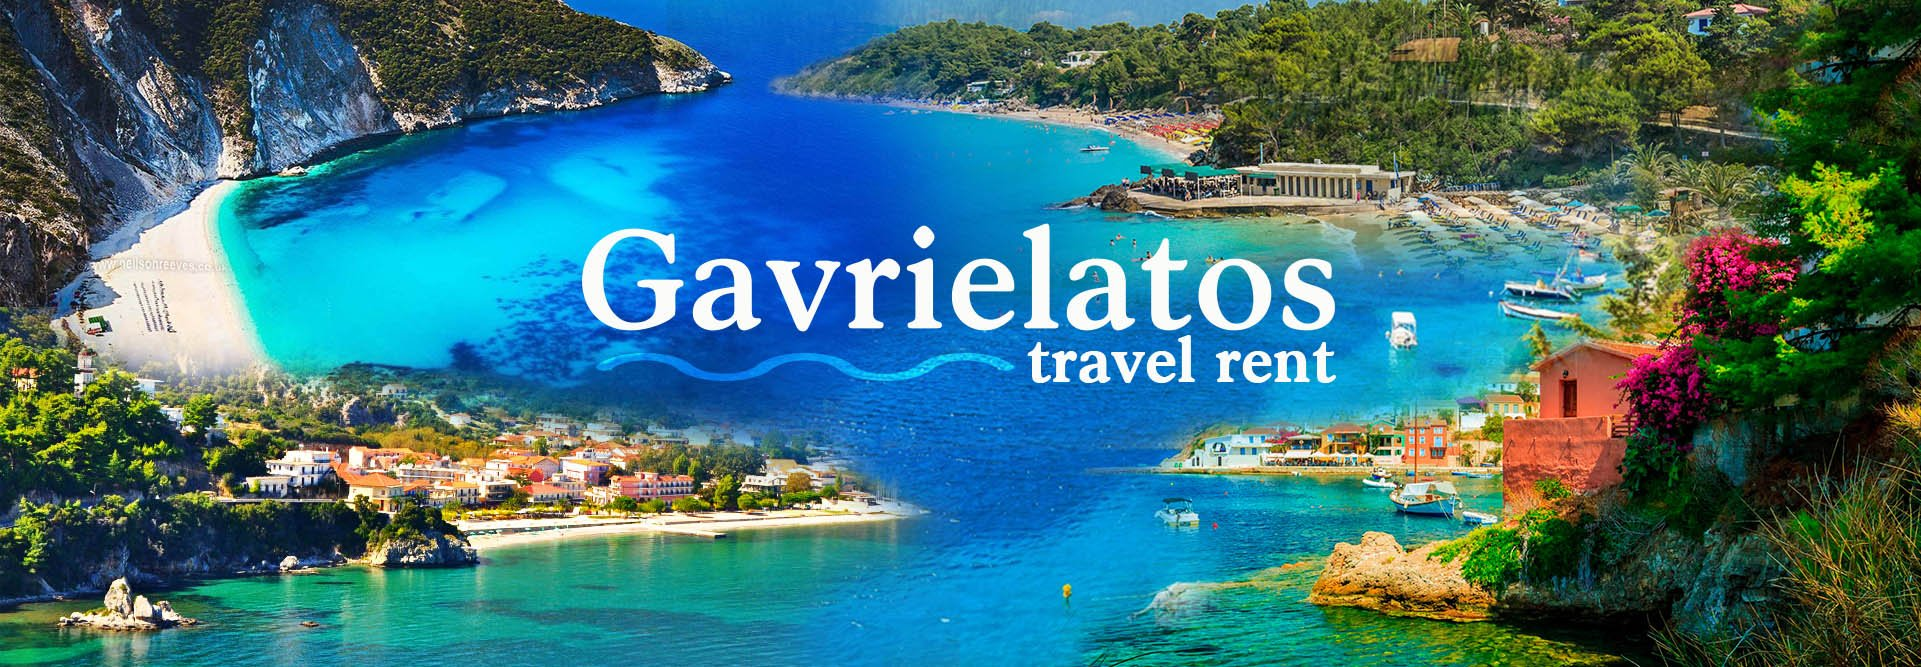 Gavrielatos - Kefalonia Travel